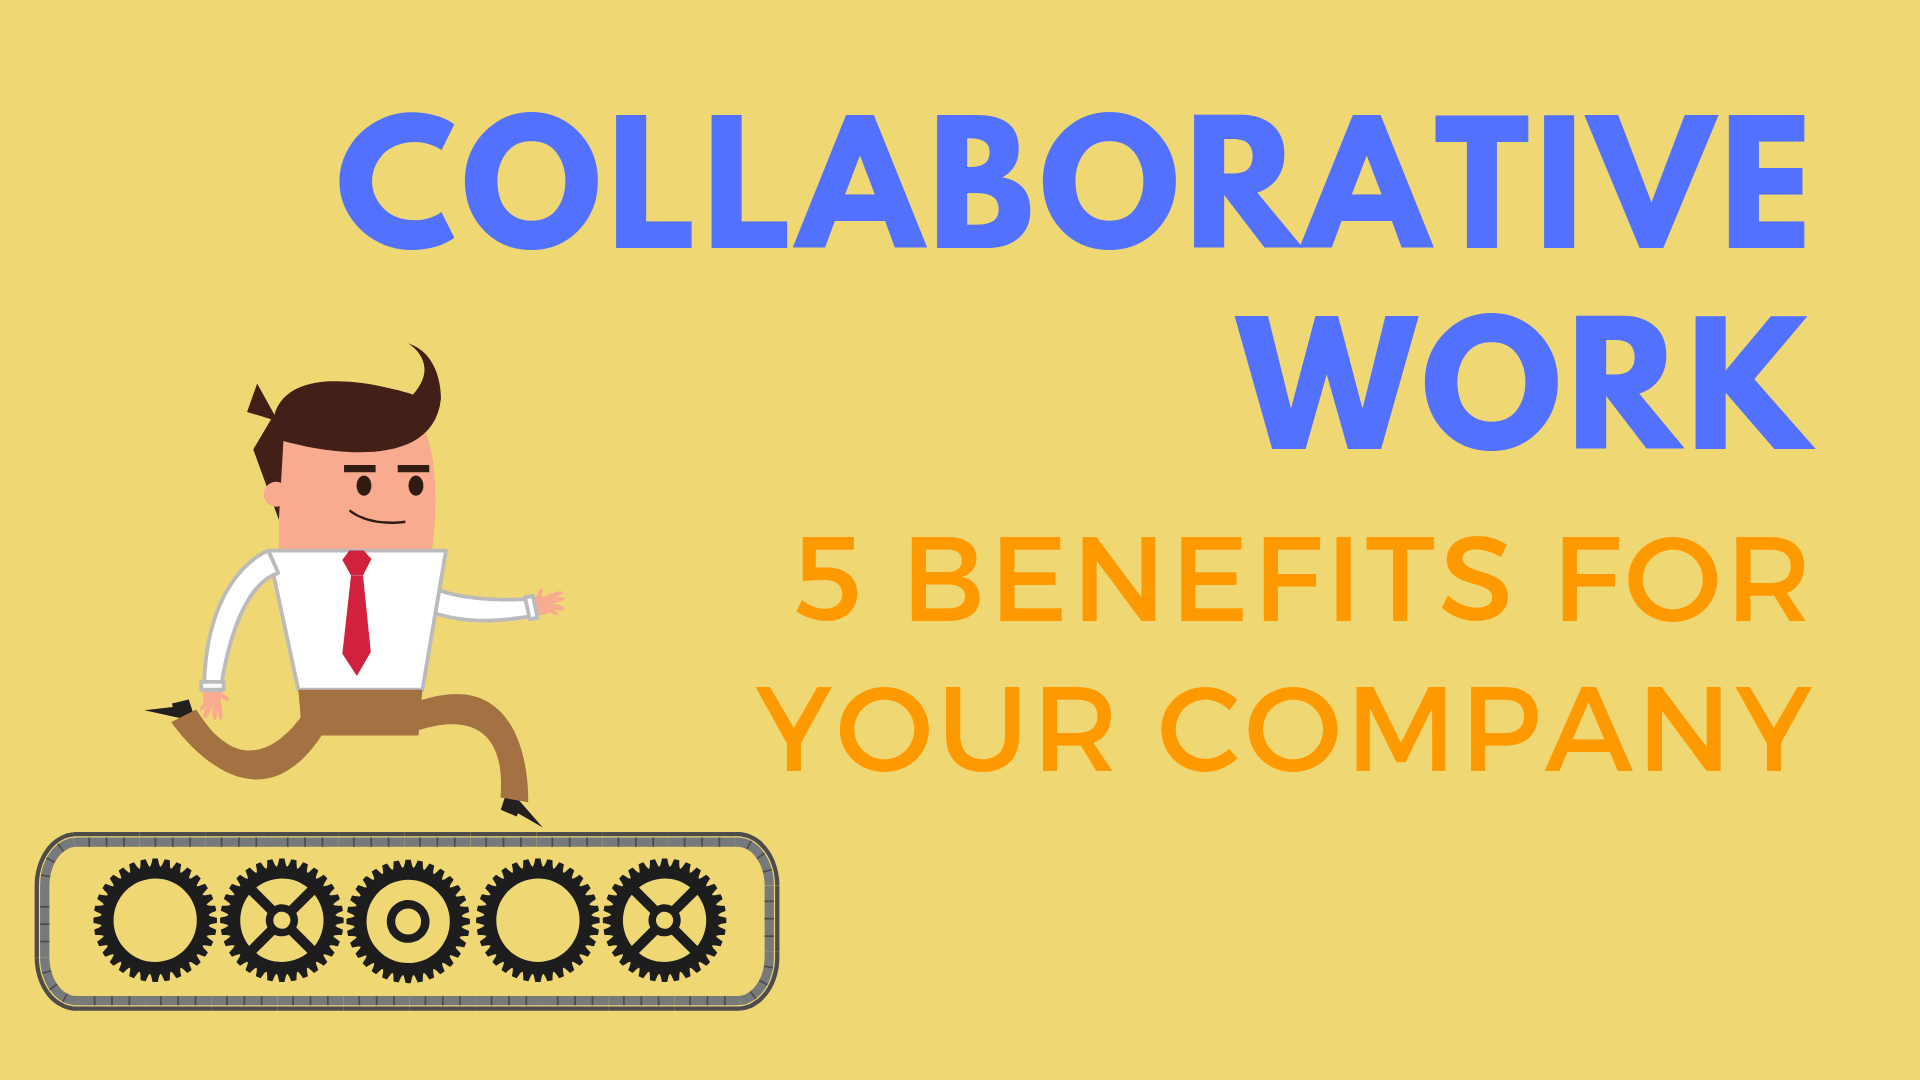 5 Benefits Of Collaborative Work For Your Company